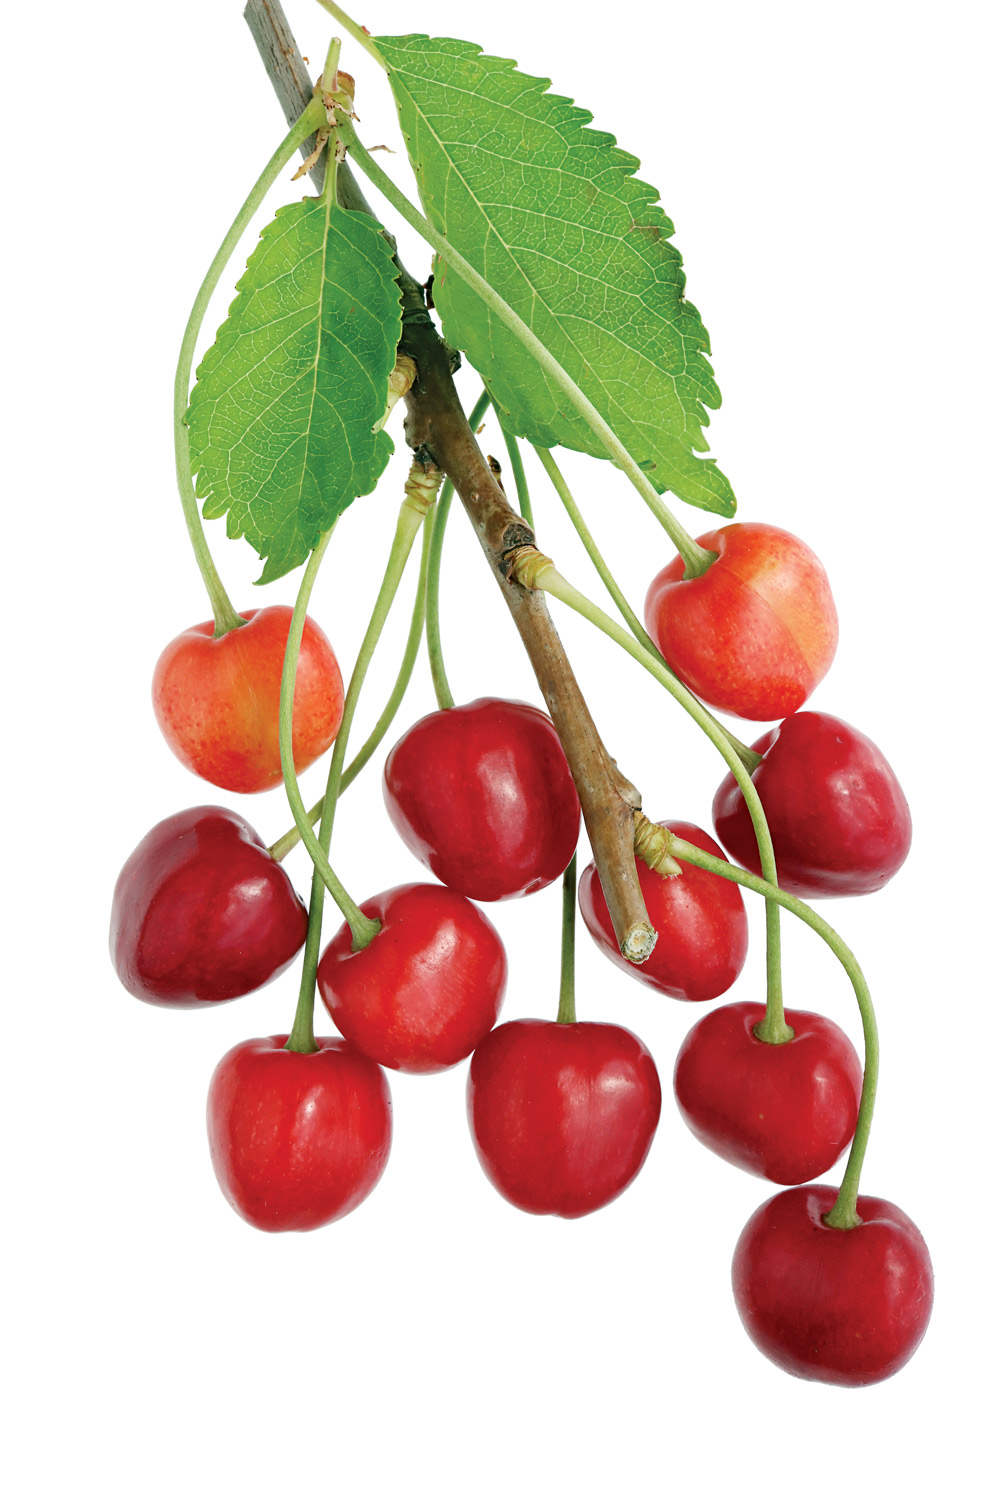 Wild cherries can be found throughout North America and in diverse environments.